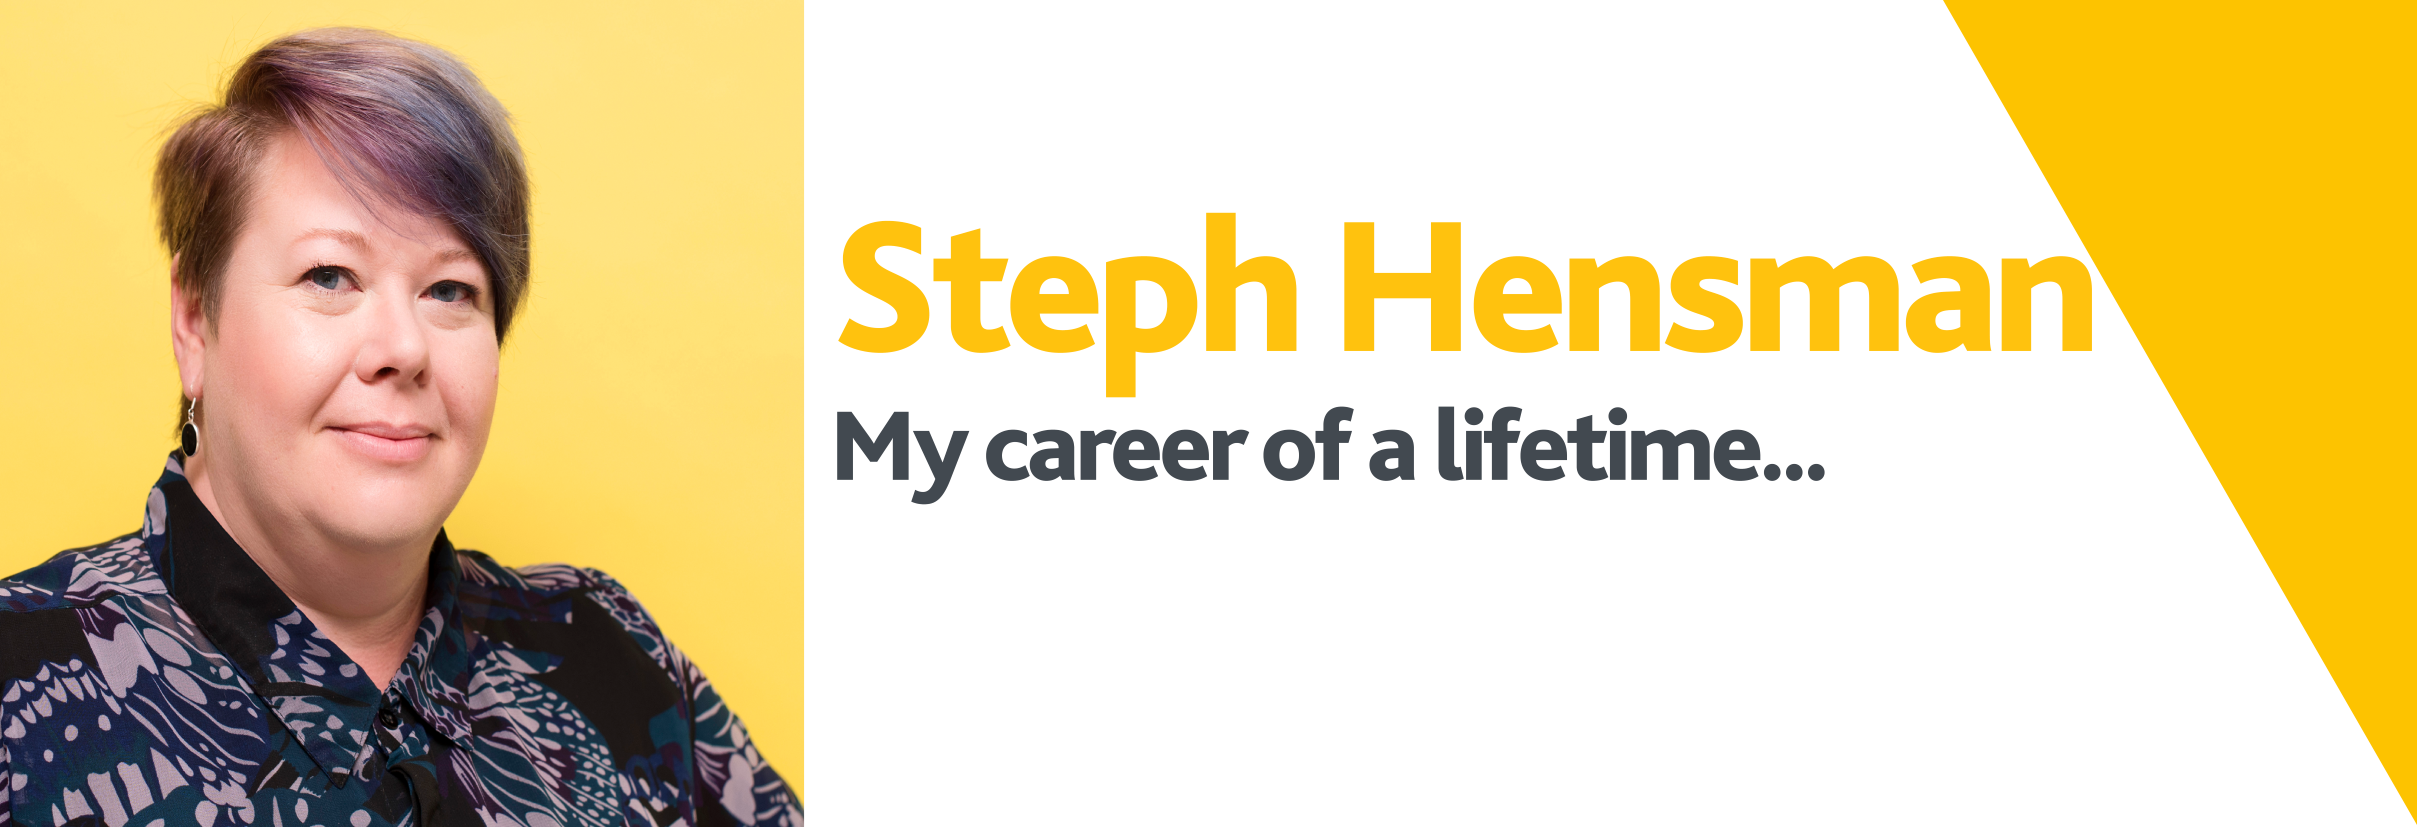 Career of a lifetime - Steph.png